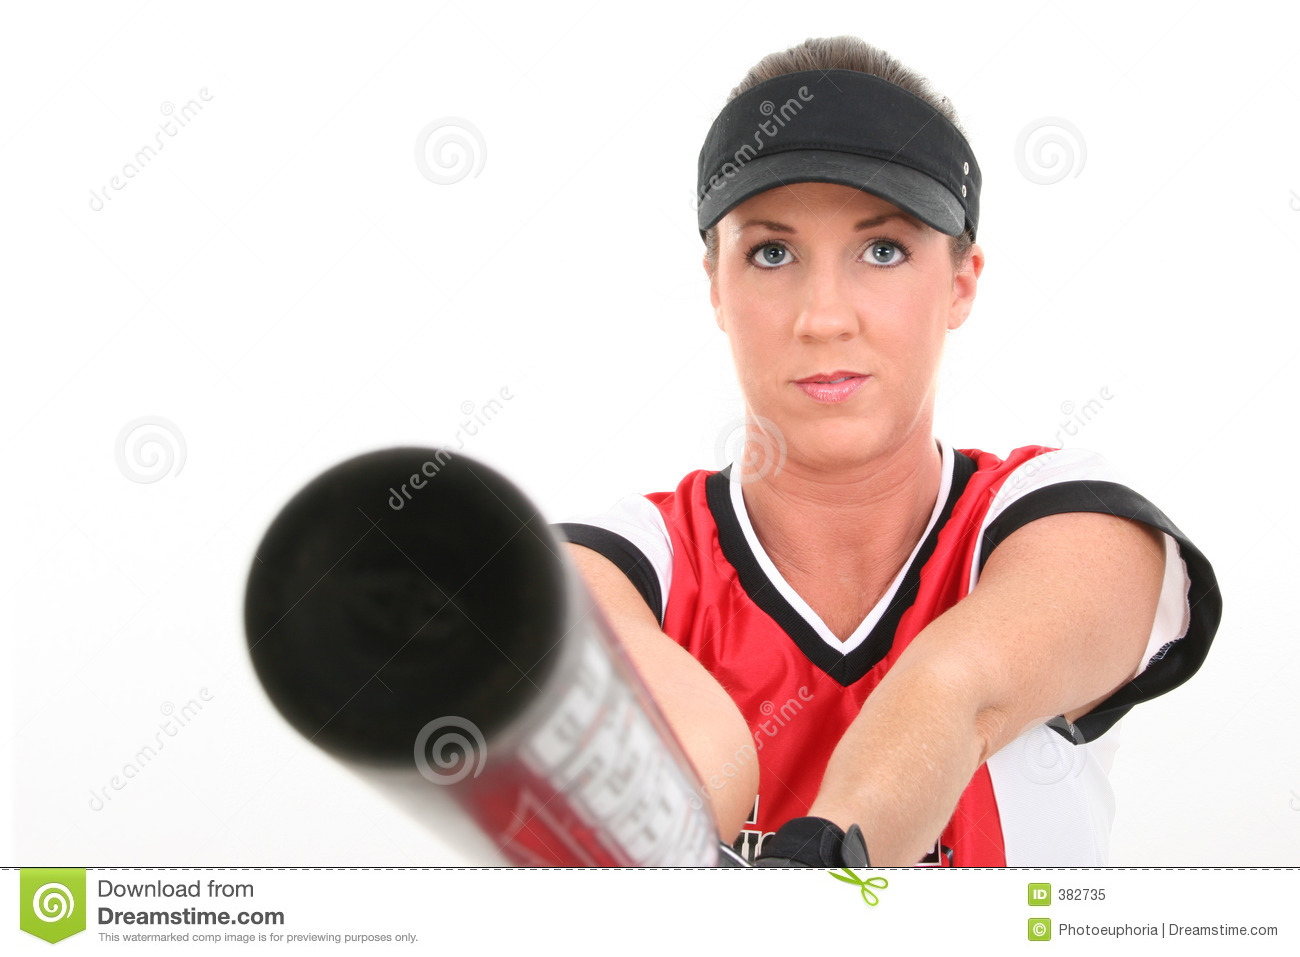 Female player softball